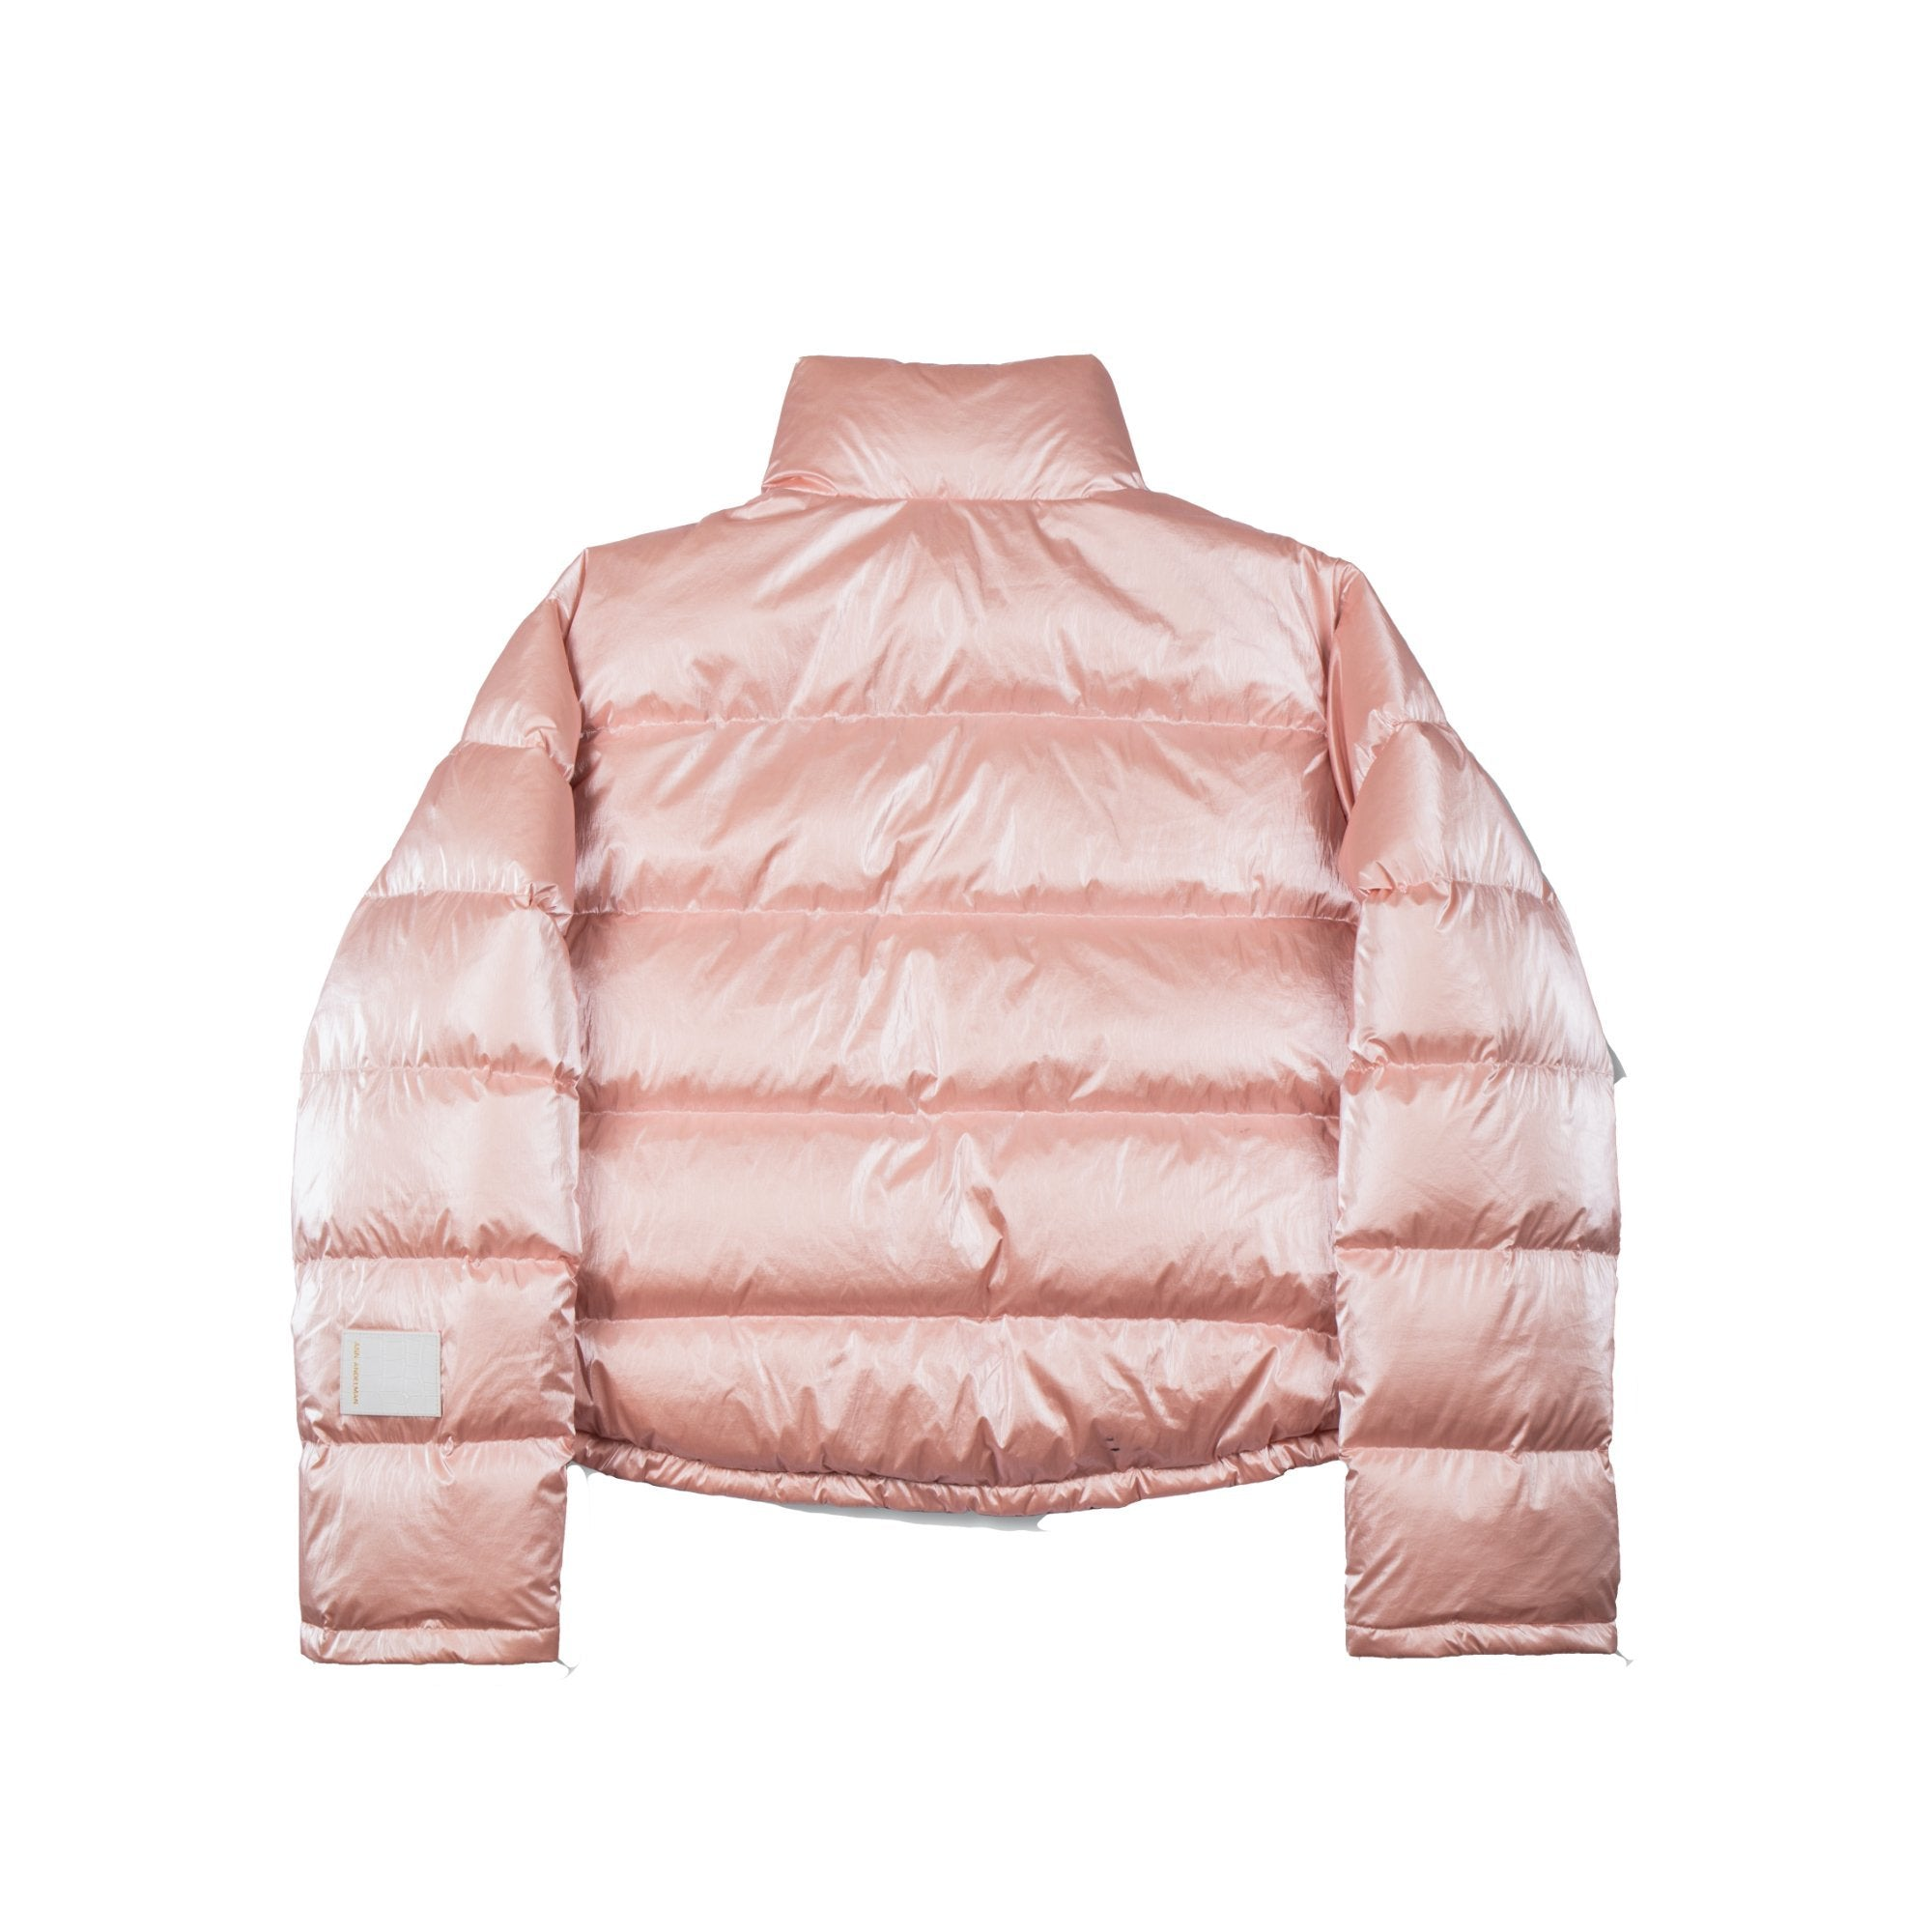 ANN ANDELMAN Pink Puffer Jacket | MADA IN CHINA